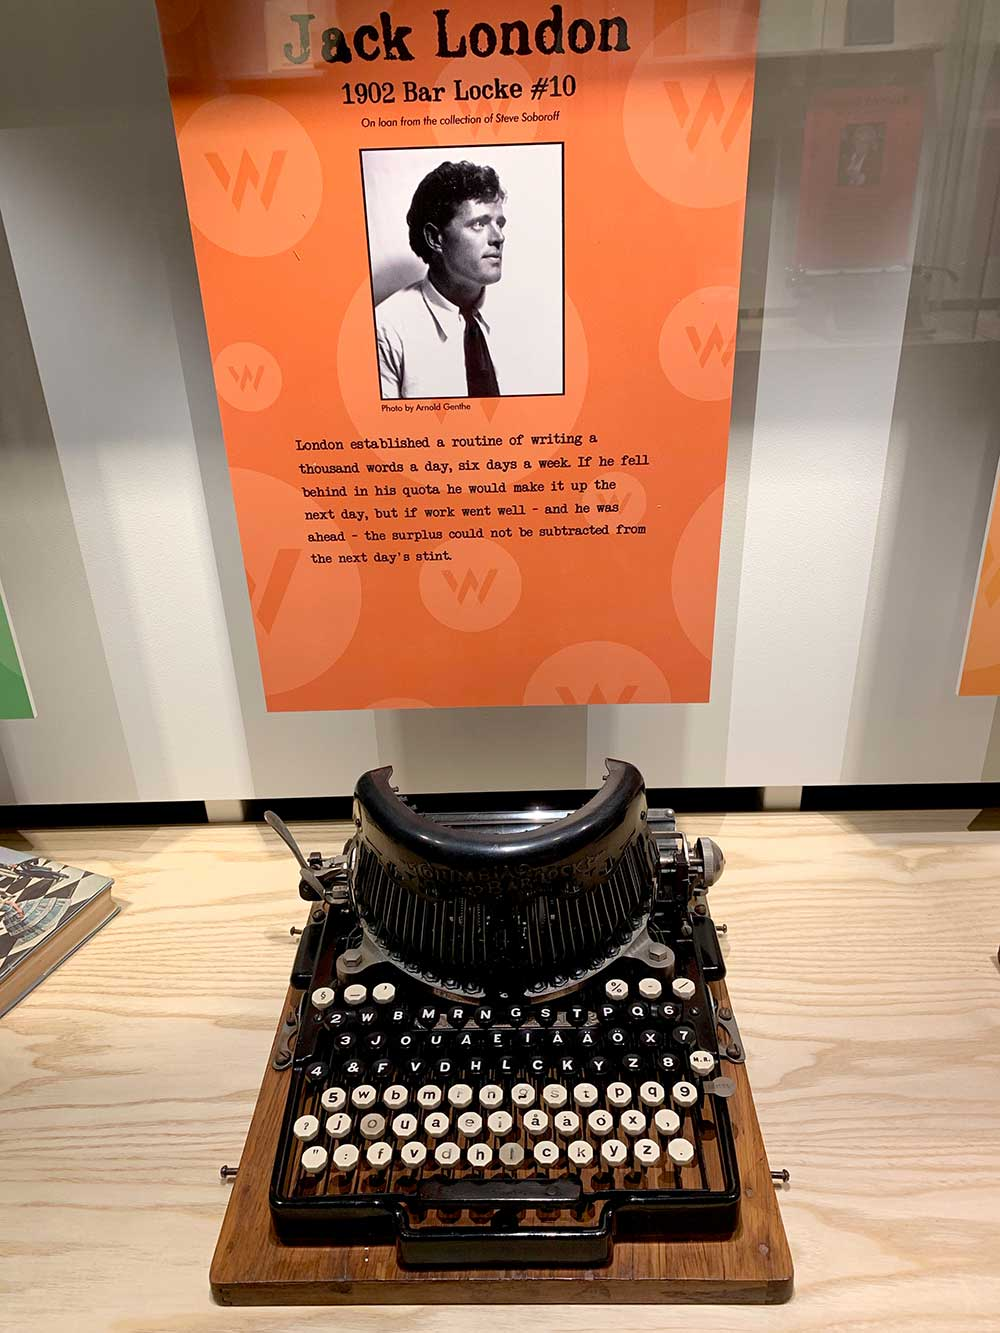 Museum display shows Jack London's 1902 Bar-Lock typewriter. This machine bears little resemblence to later typewriters and has separate keys for uppercase and lowercase letters, as well as keys for numbers seemingly scattered at random. It could pass for a spy coding and decoding device.